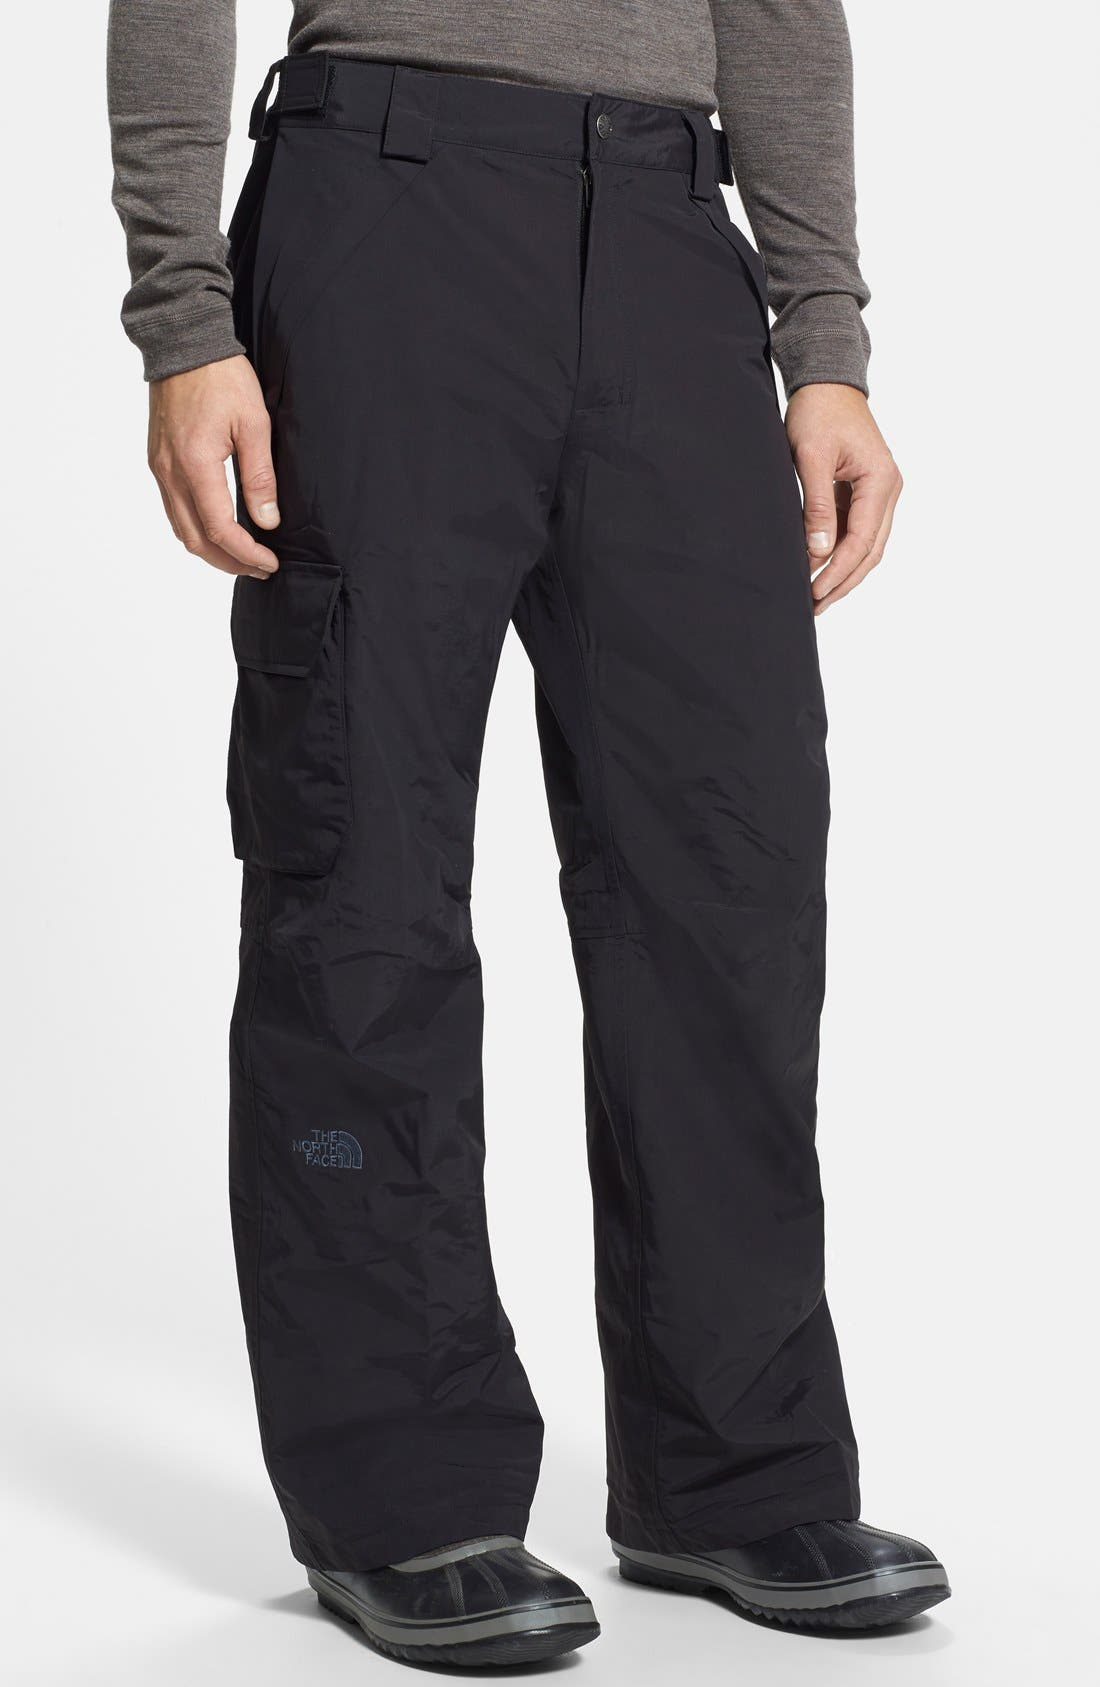 Main Image - The North Face 'Seymore' Ski Pants